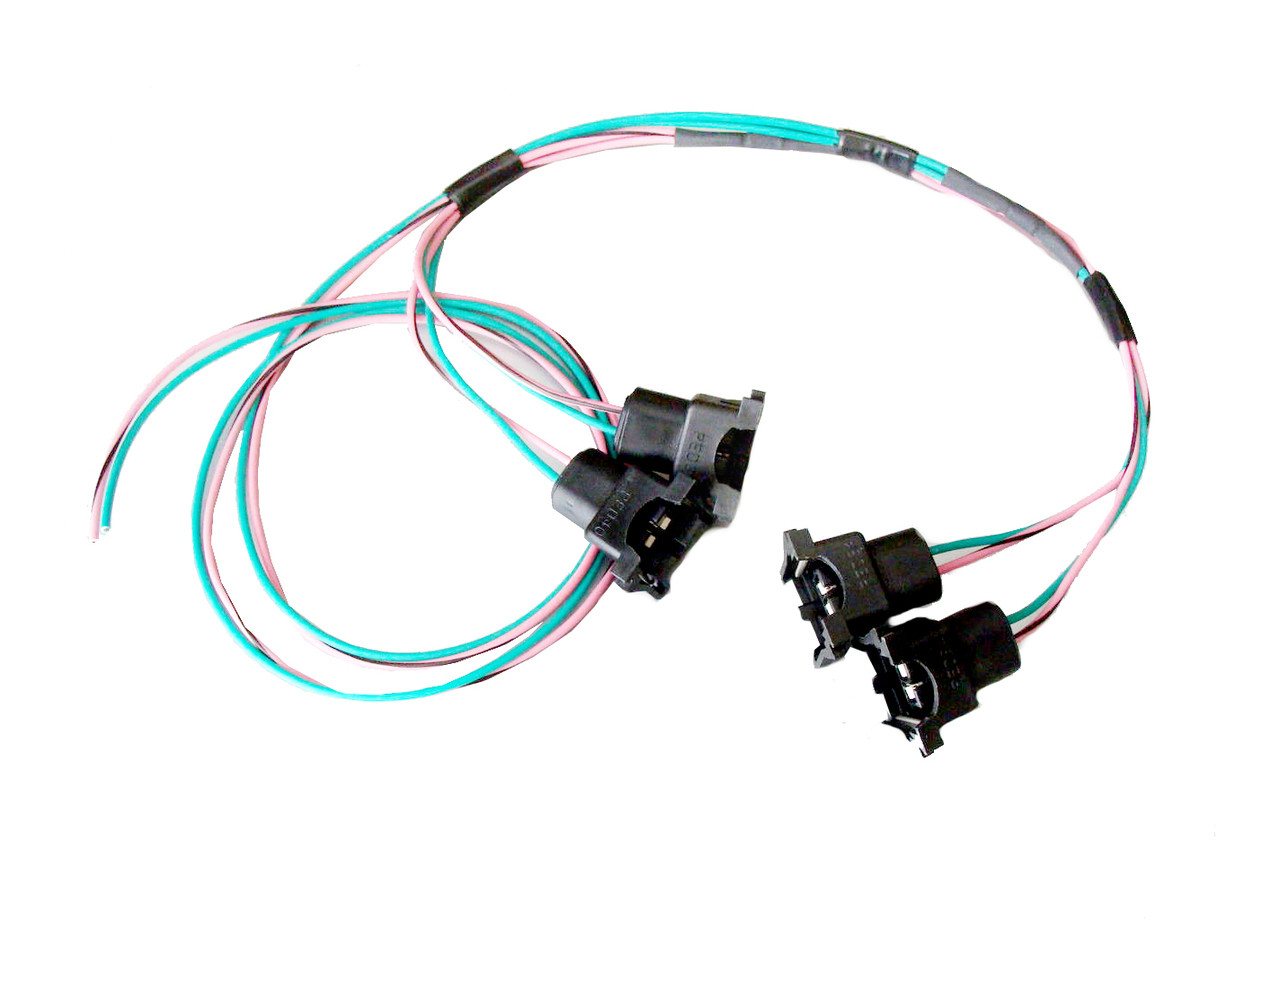 85 95 tpi lt1 fuel injector connector wiring harness assembly lh rh hawksmotorsports com 1976 VW Beetle Fuel Injection Parts 1976 VW Beetle Fuel Injection Parts